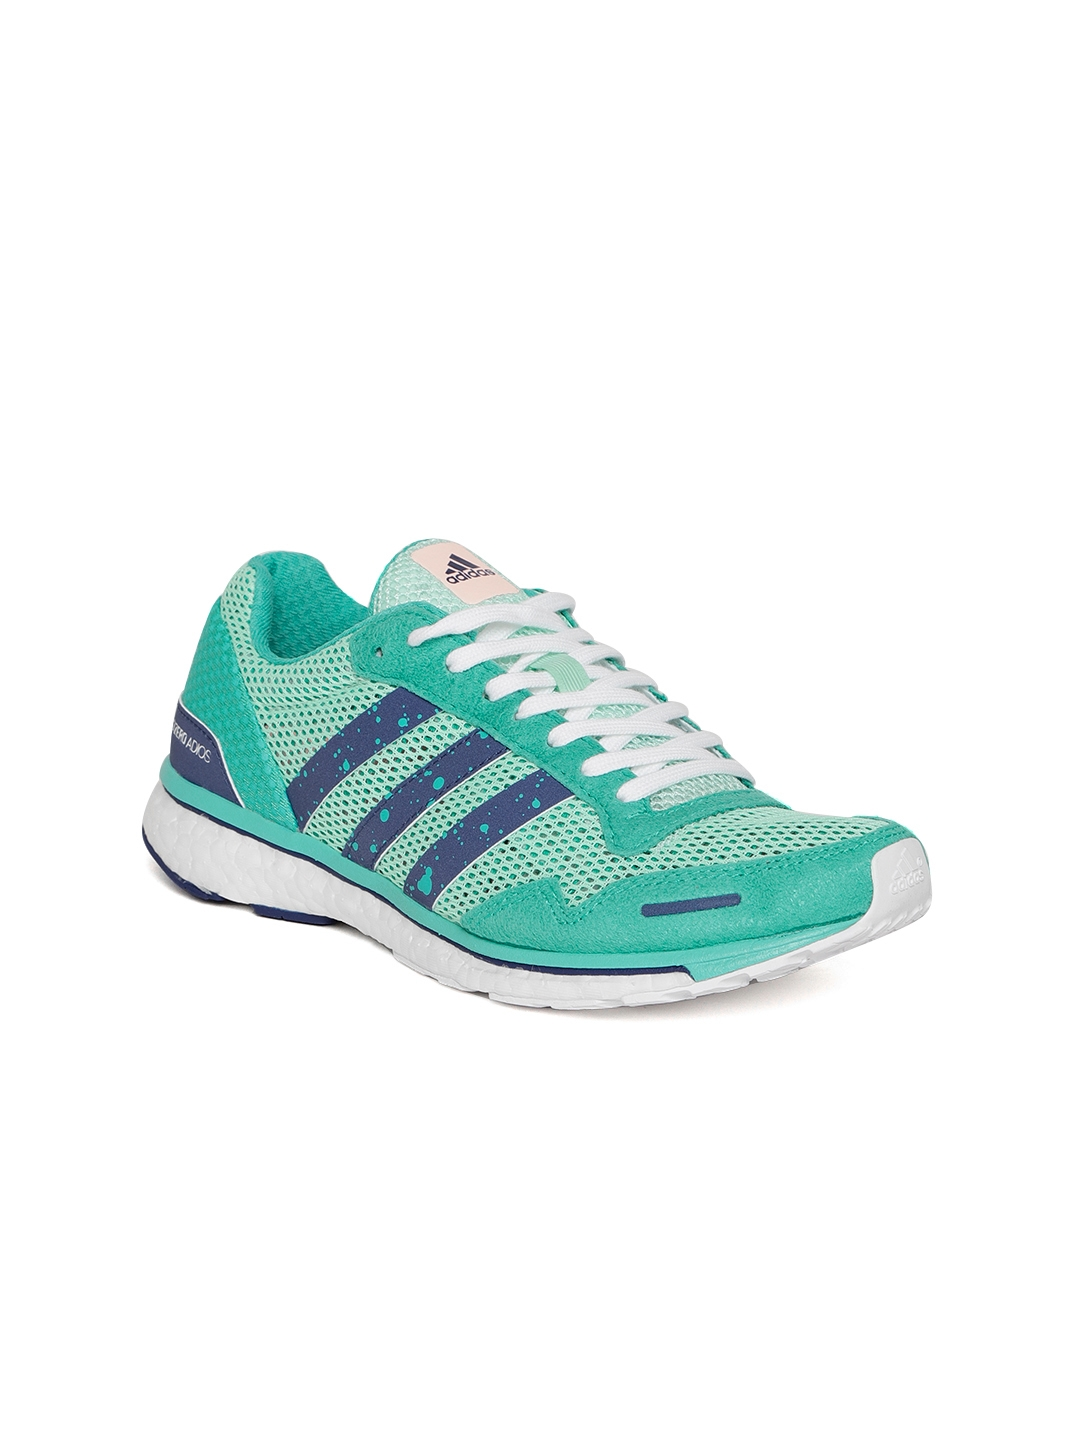 2dae255a8ced4 Buy ADIDAS Women Green Adizero Adios 3 Running Shoes - Sports Shoes ...